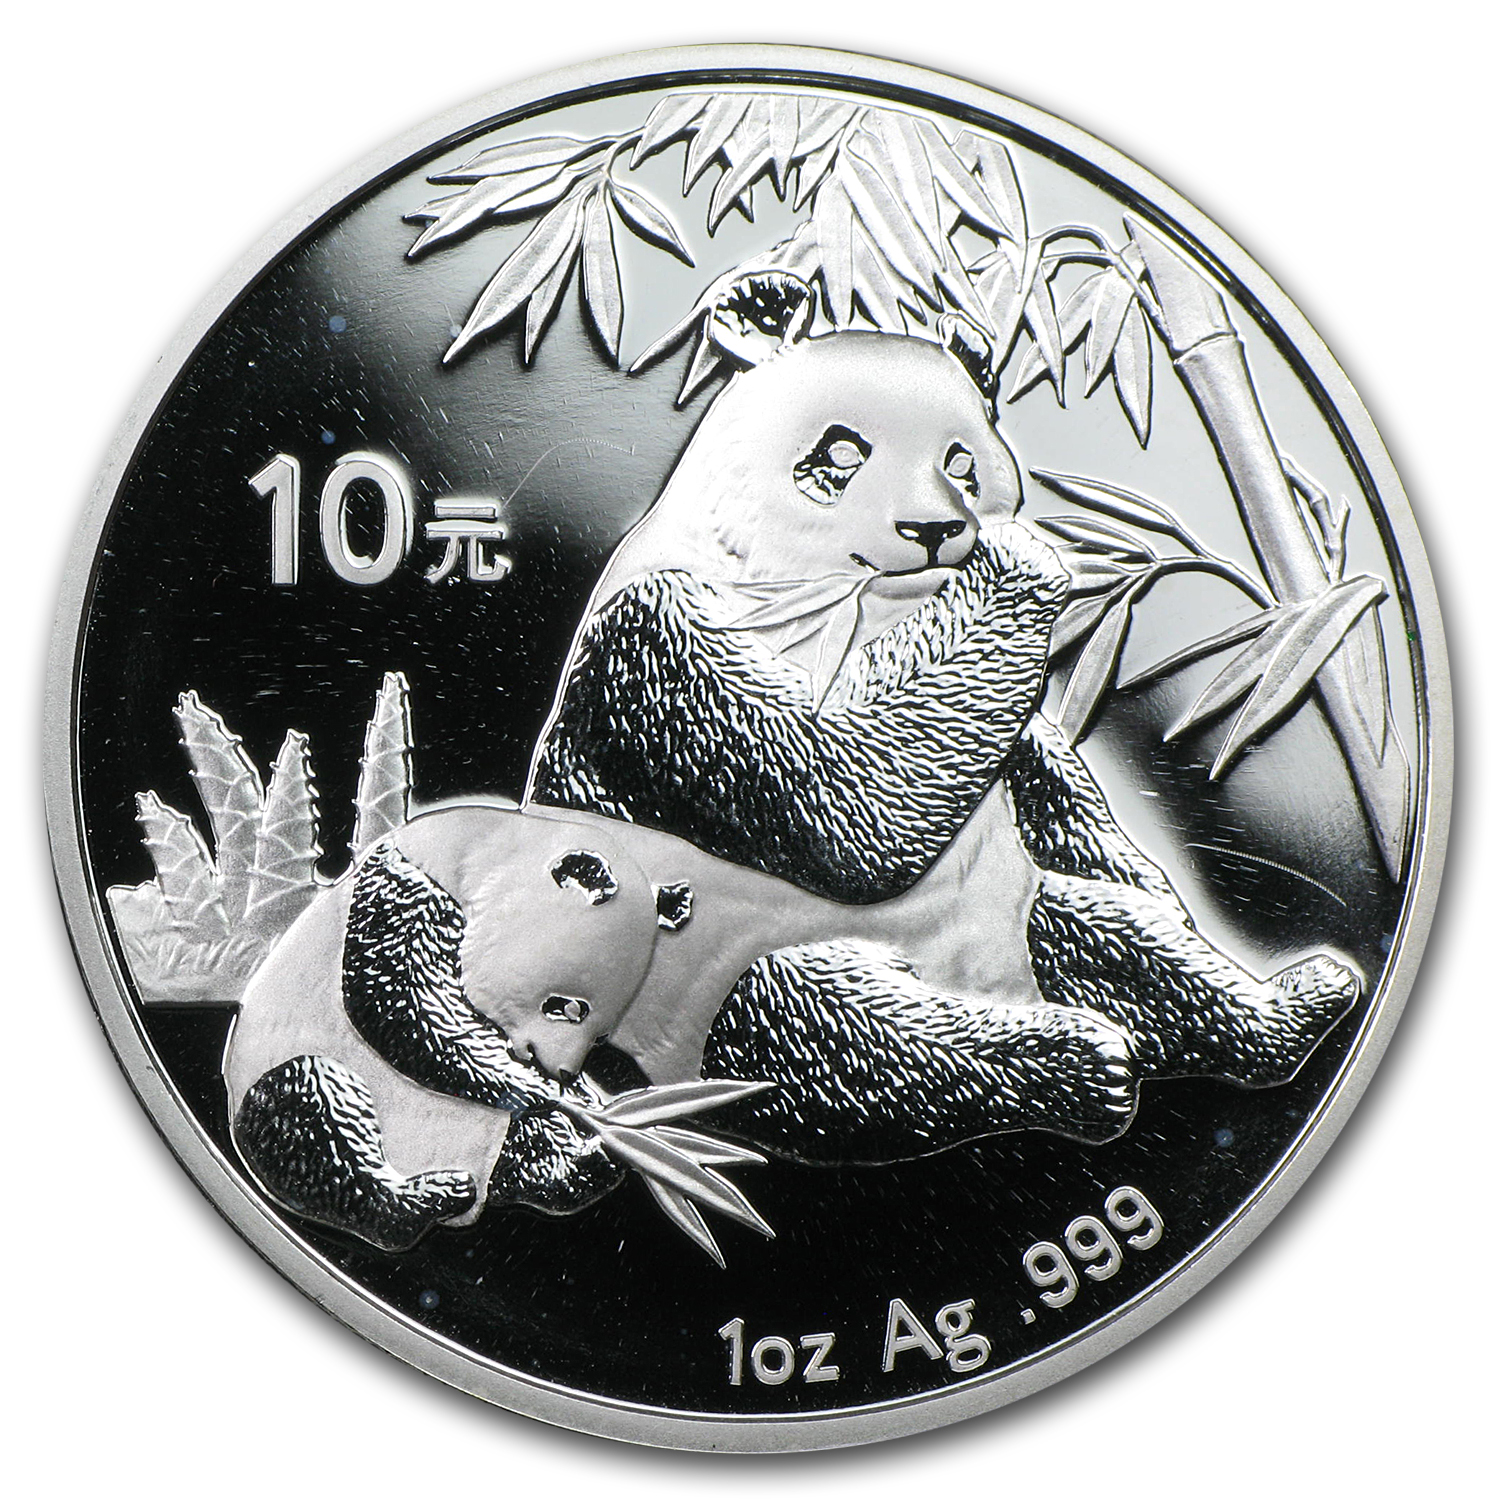 2007 1 oz Silver Chinese Panda (Light Abrasions)